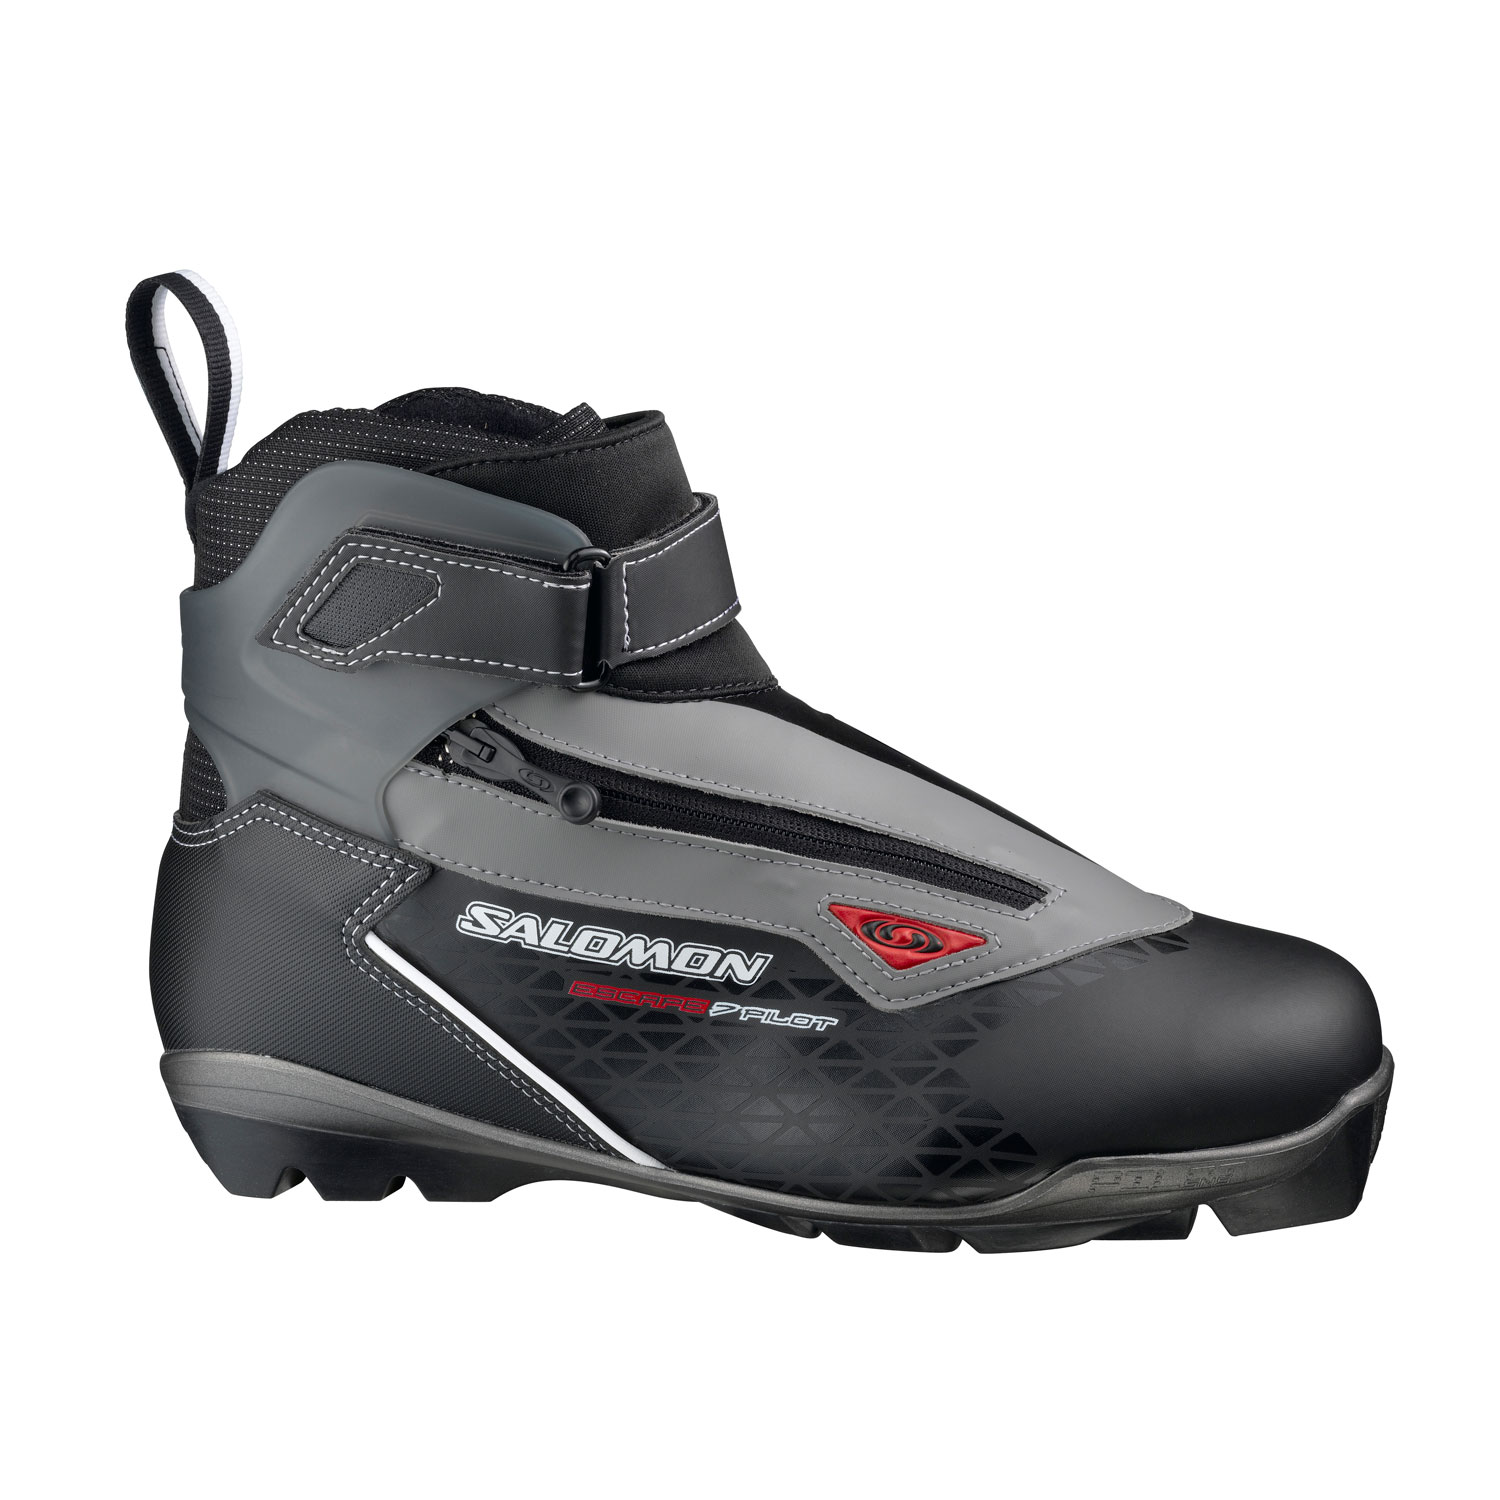 Ski Sport touring boot with renown Salomon fit and updated design.Key Features of the Salomon Escape 7 Pilot CF Cross Country Ski Boots: SNS PROFIL Touring Sport outsole Weight: 1040 g/pair (8) Cuff: Ergonomic flexible cuff Protection: Lace cover with diagonal zip Last: Salomon Touring fit - $160.00